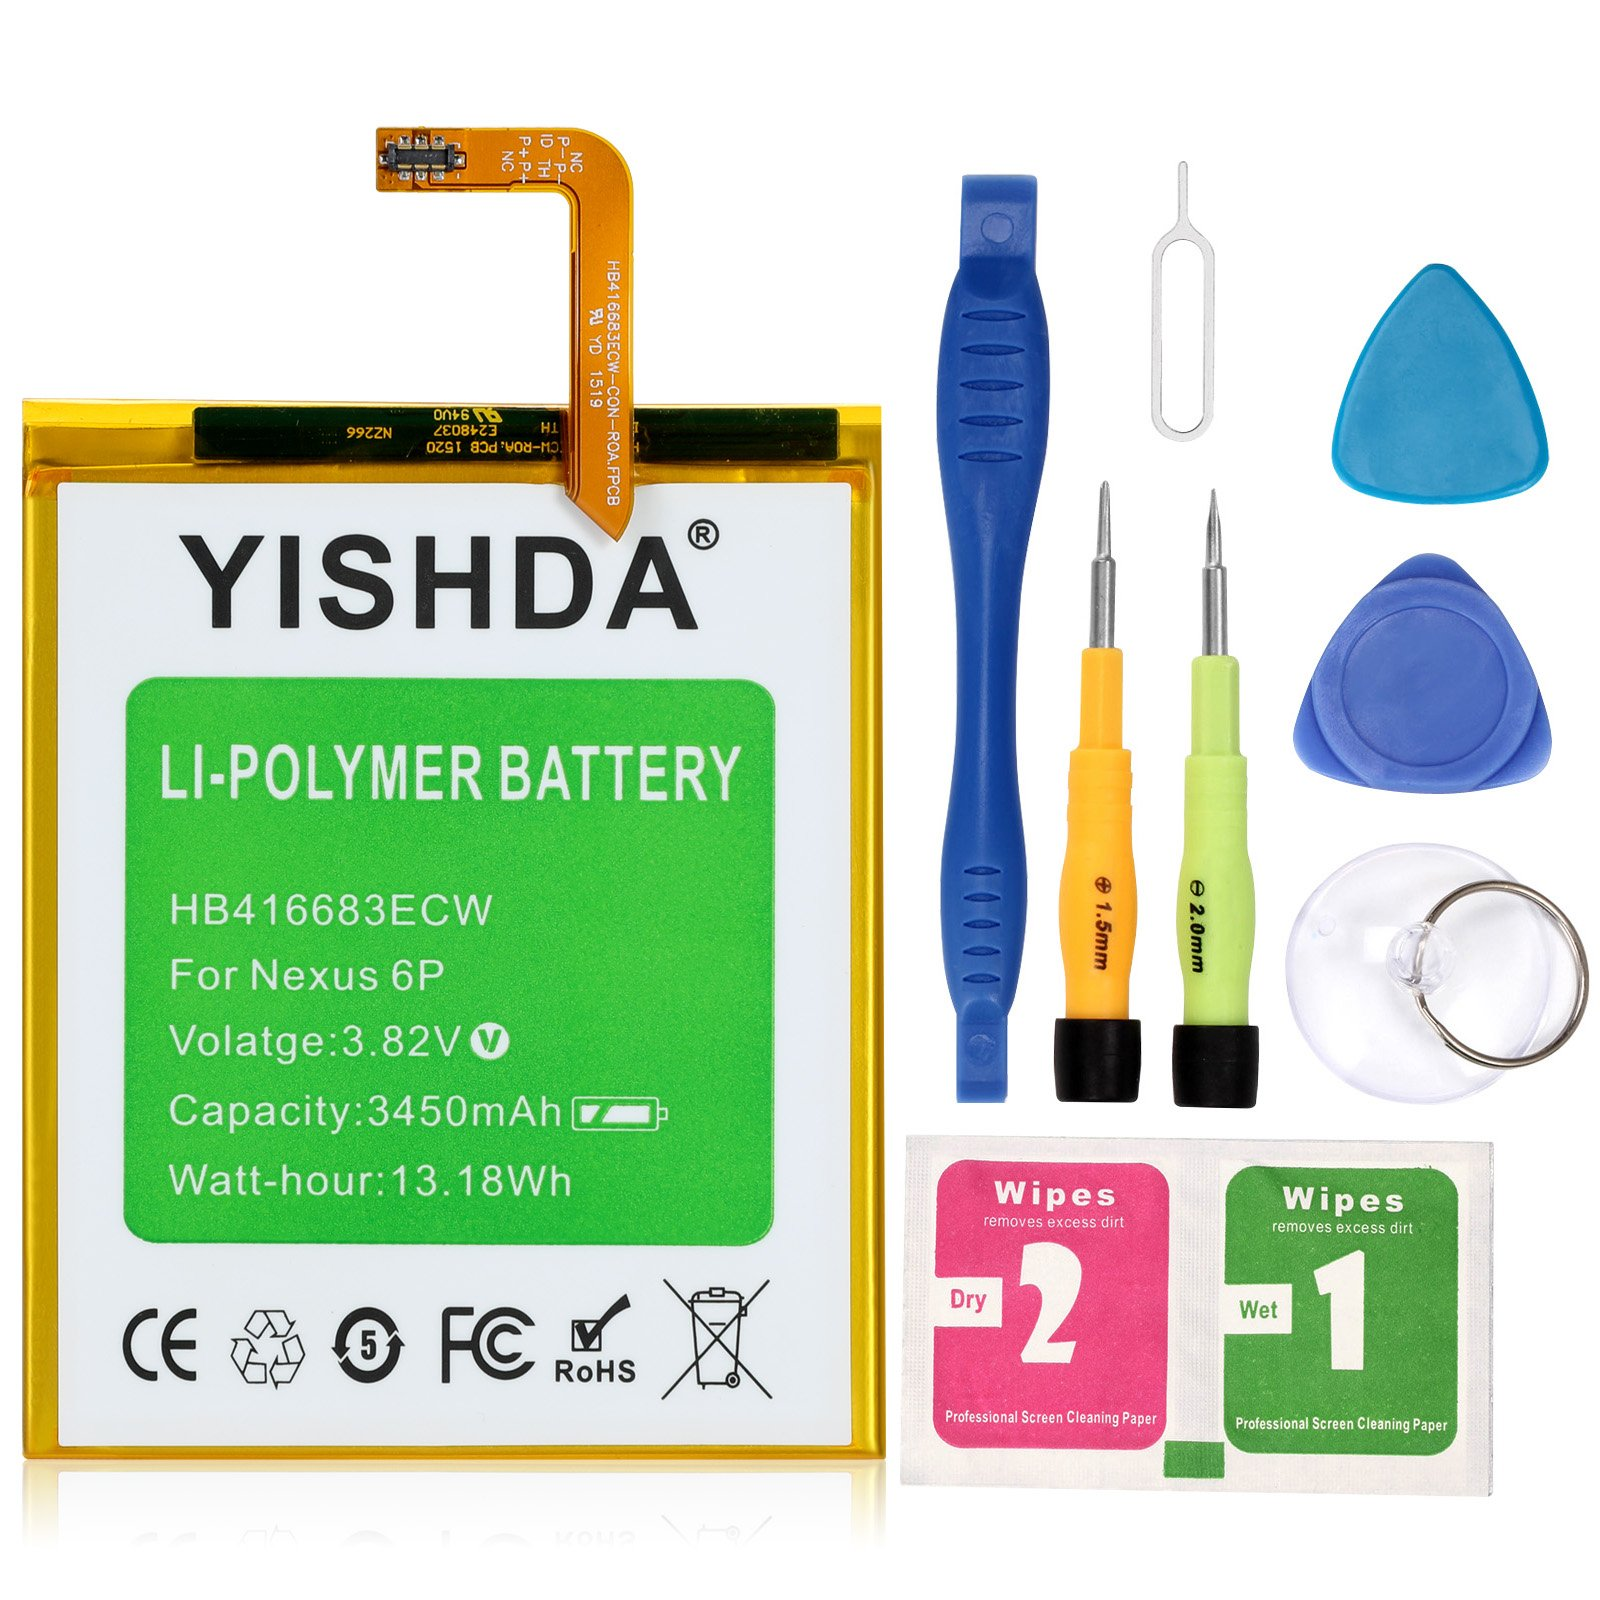 YISHDA Nexus 6P Battery 3450mAh Replacement HB416683ECW Battery for Huawei Google Nexus 6P H1511 H1512 with Tools | Huawei Google Nexus 6p Battery Kit [18 Month Warranty]